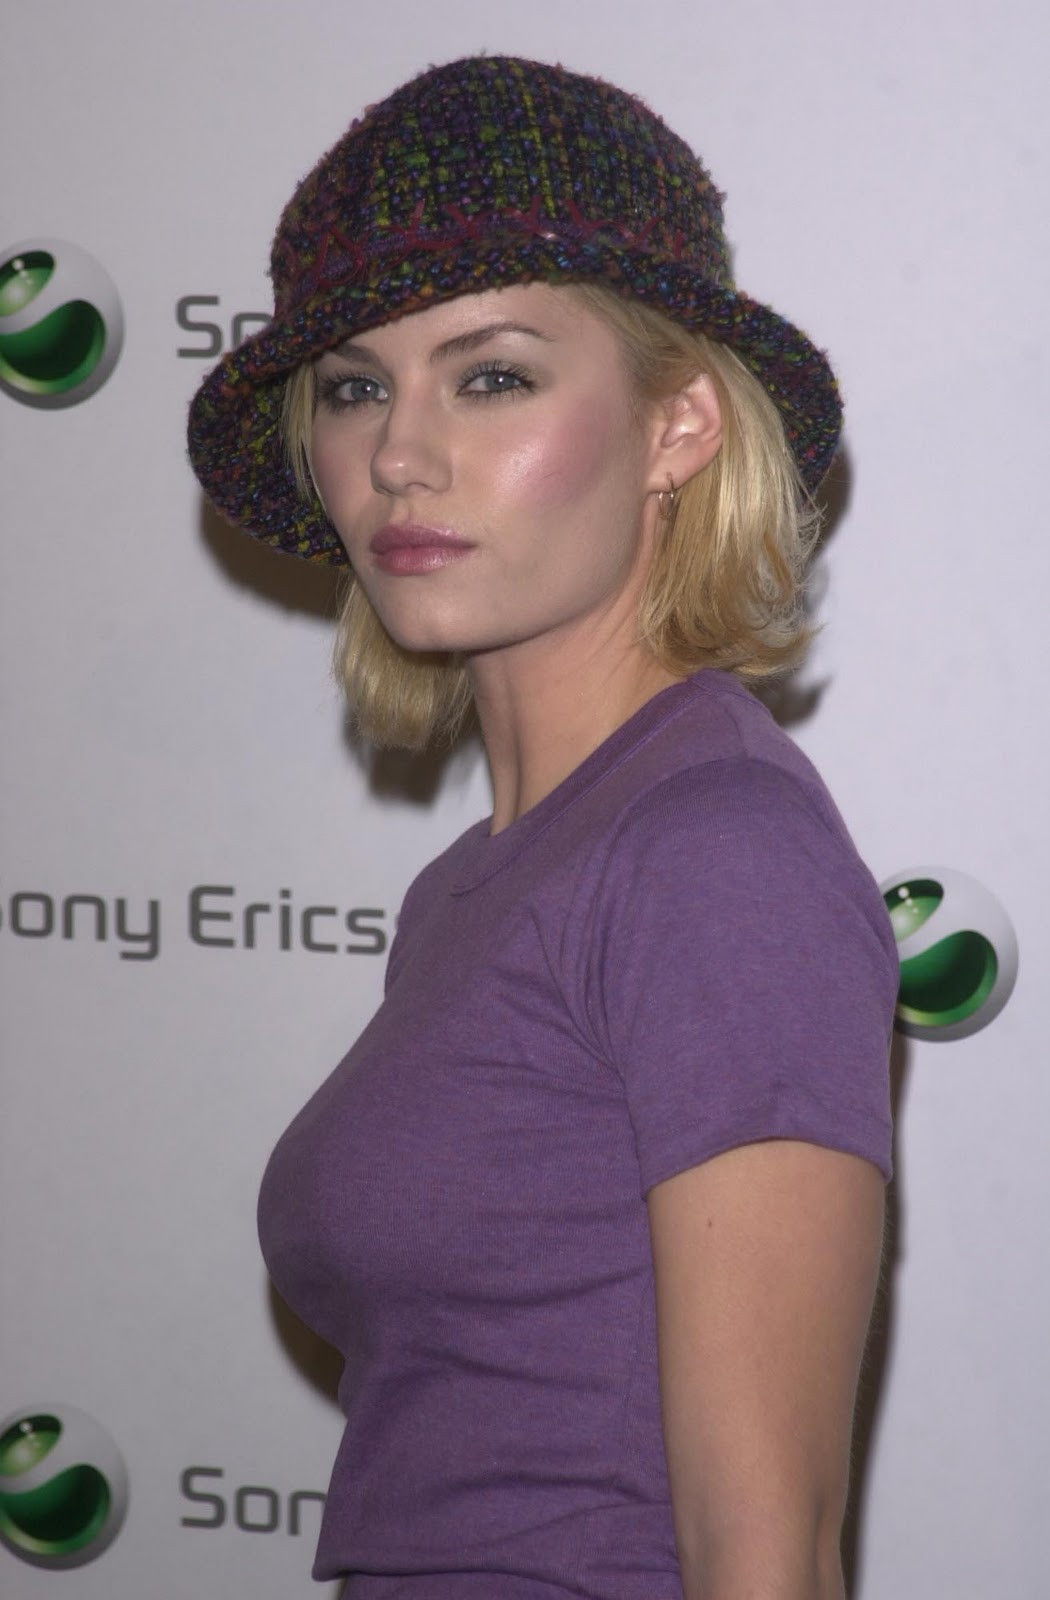 http://2.bp.blogspot.com/-jv7762NBWgw/Tn6PZyrLi6I/AAAAAAAAAkY/01JcHJSurHA/s1600/Elisha-Cuthbert-pics-images-photos-movies-actress-flims+1.jpg